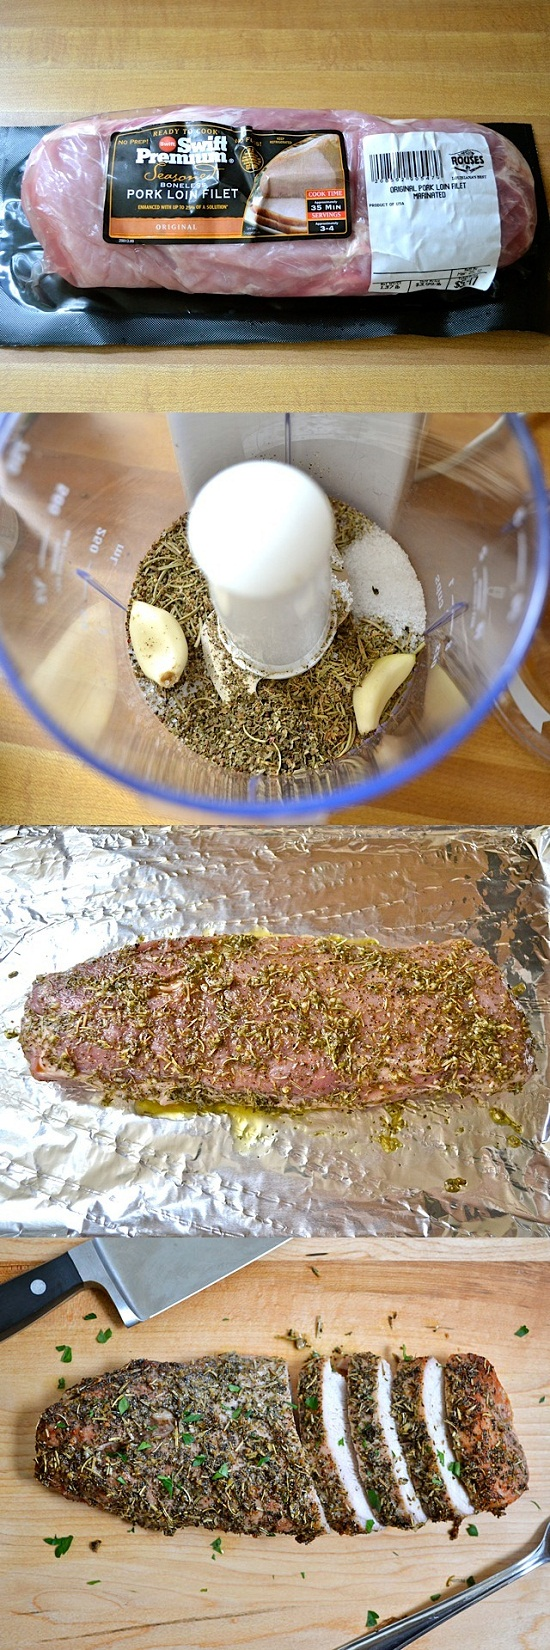 herb-roasted-pork-loin-Recipe